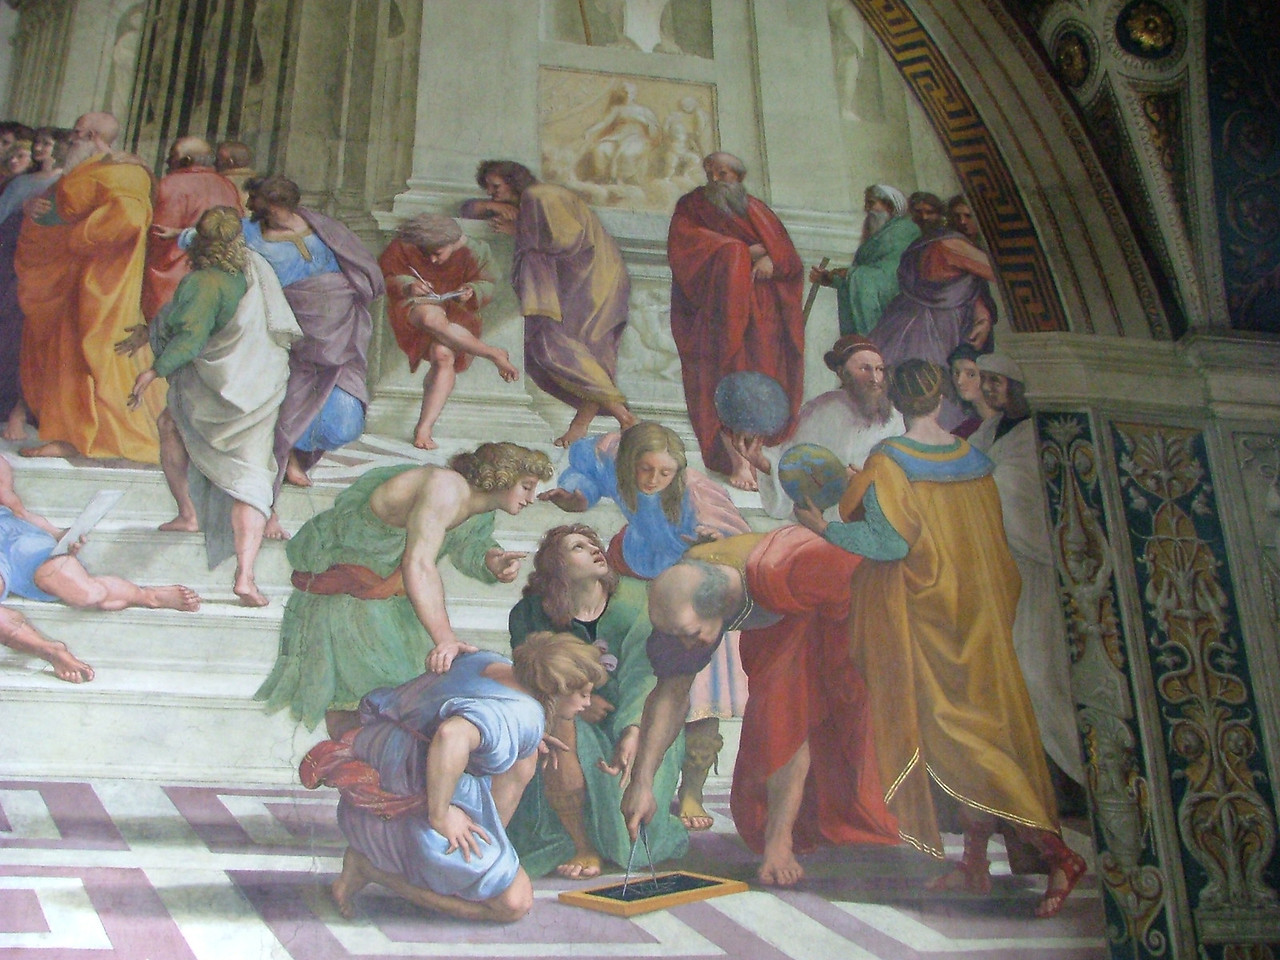 Vatican - School of Athens, my favorite painting since high school